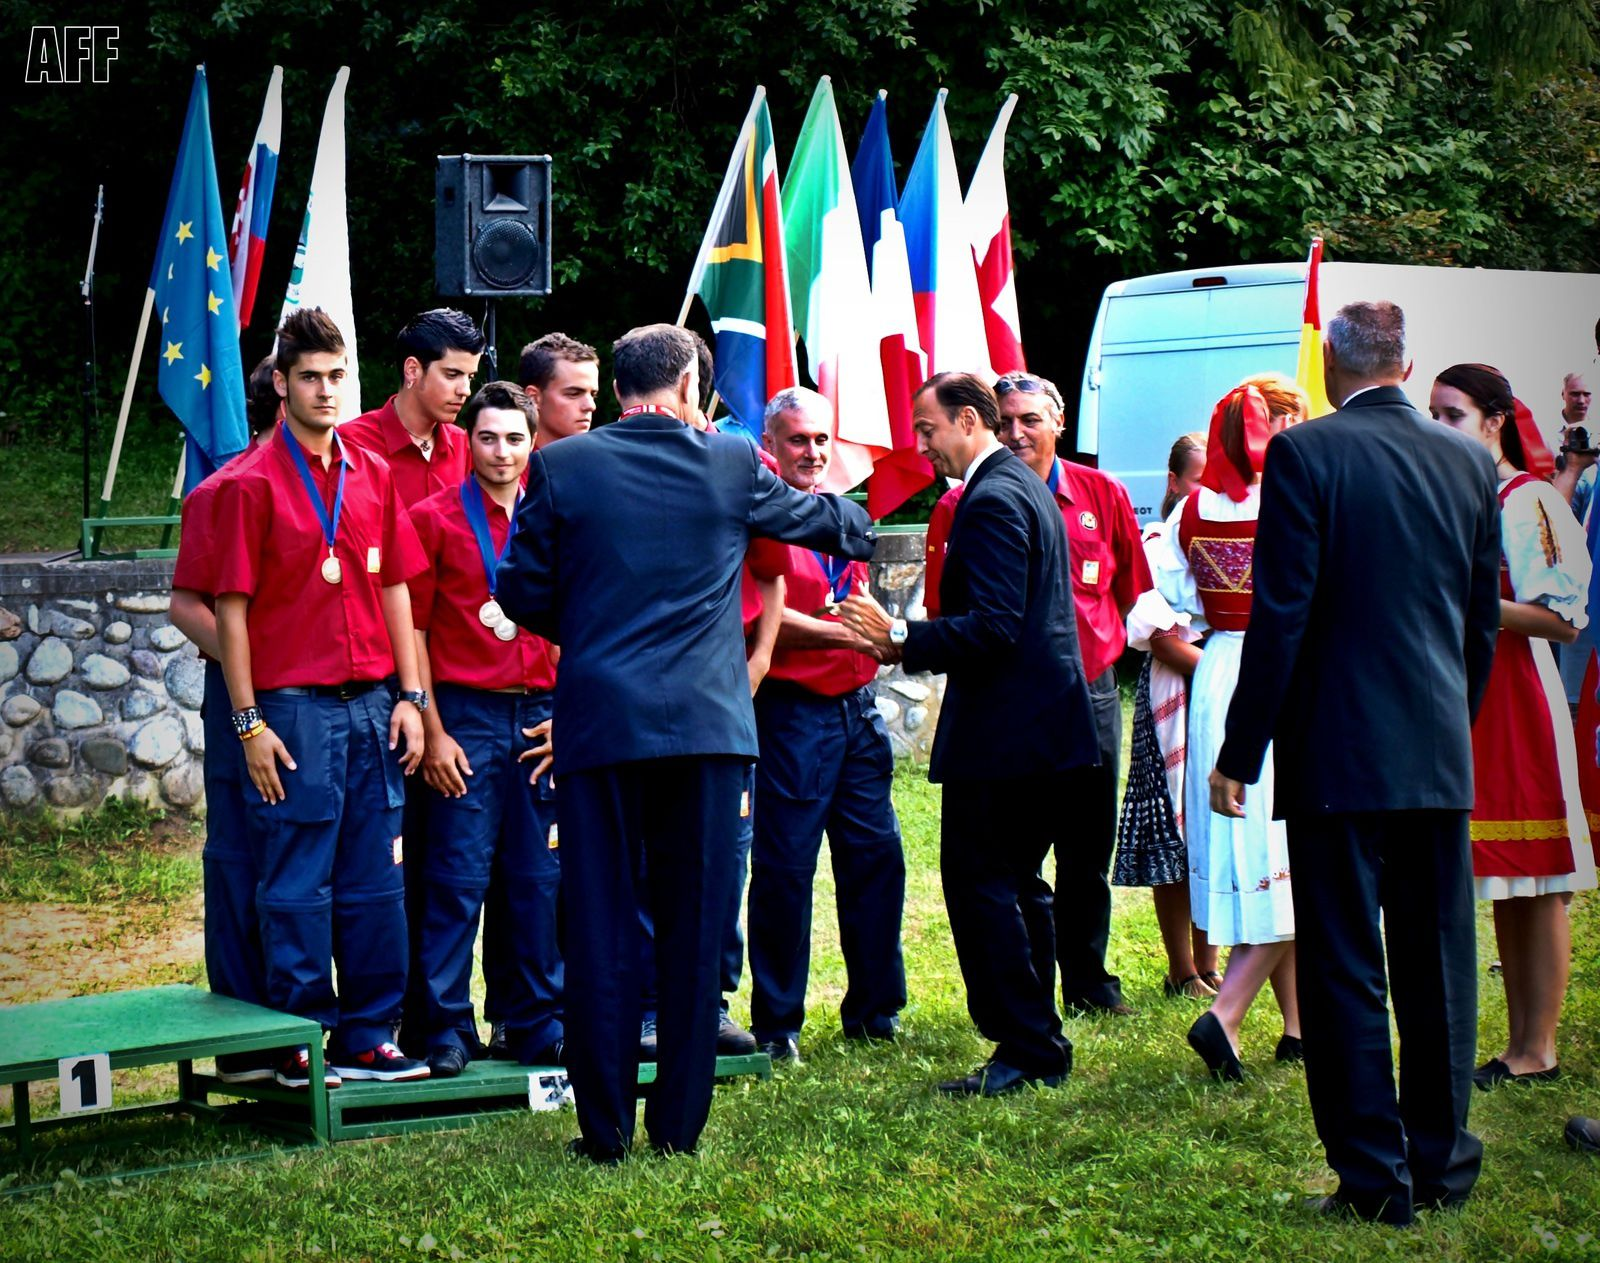 Entrega de medallas. - Delivery of medals.